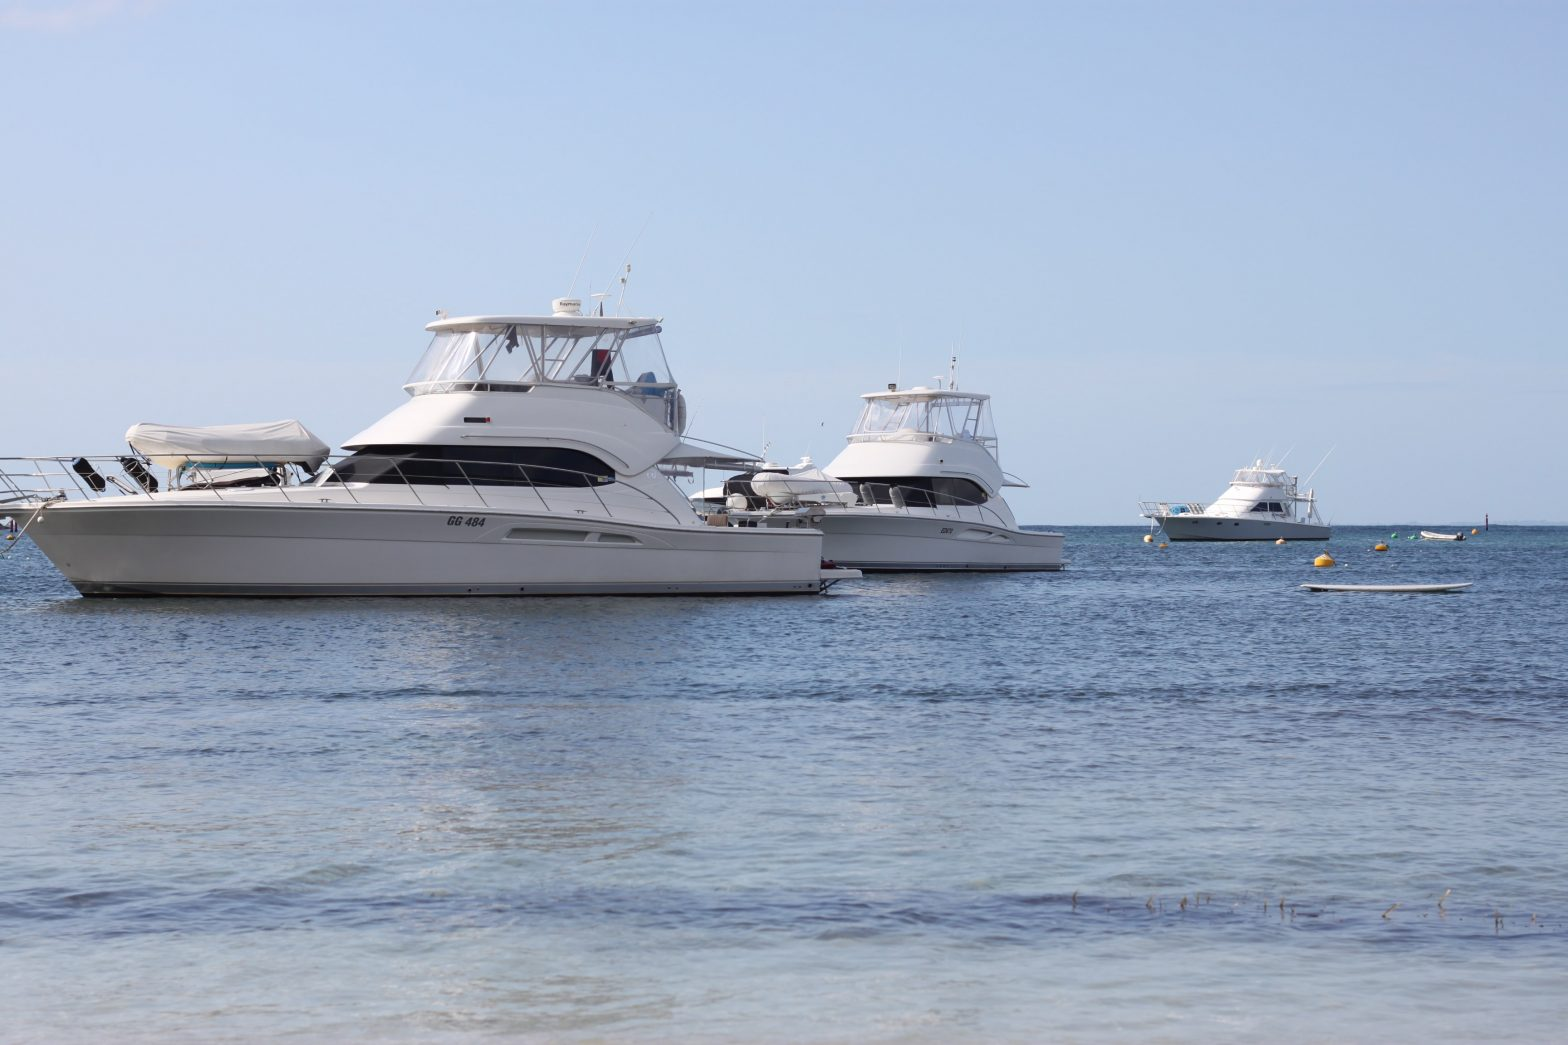 Factors to Consider Before Purchasing a Boat